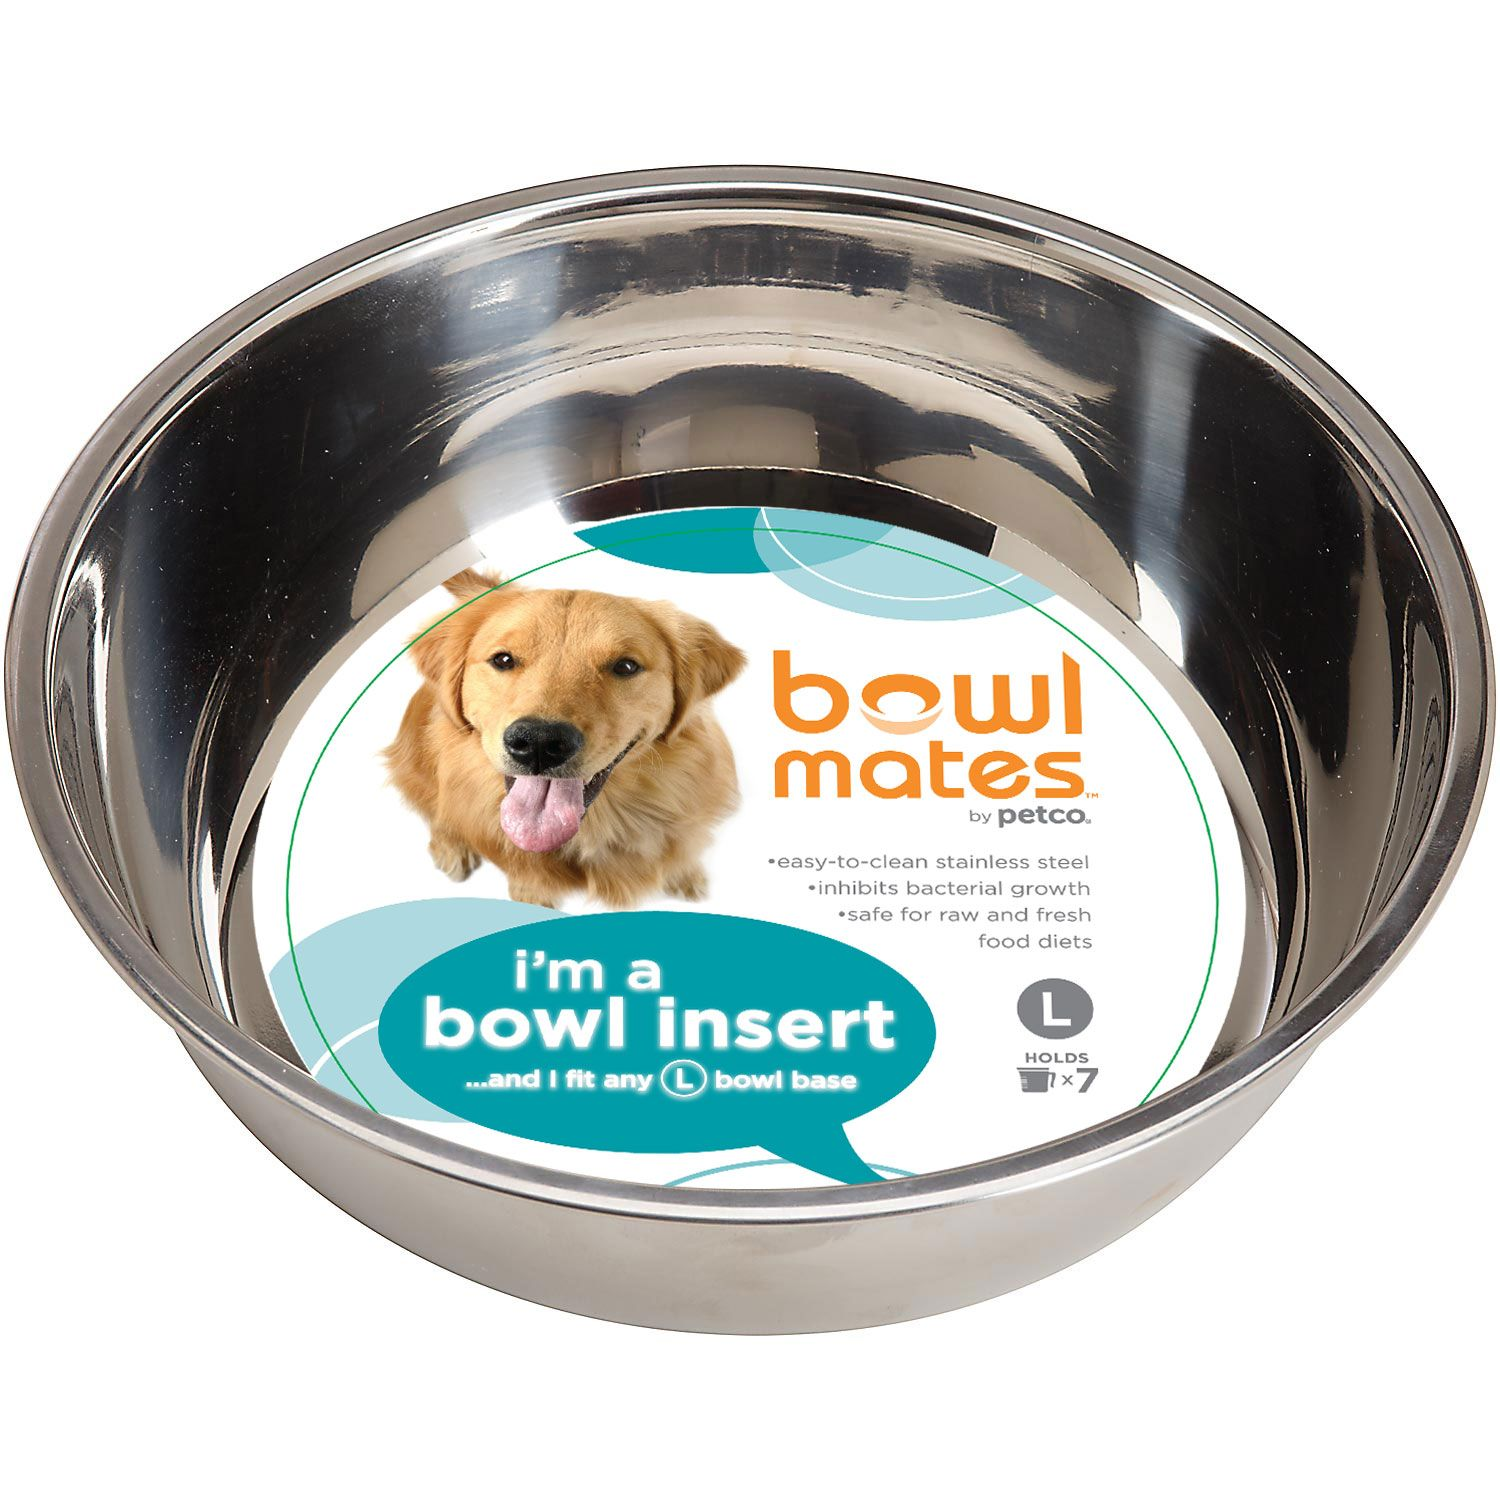 Bowlmates by petco large stainless steel bowl insert